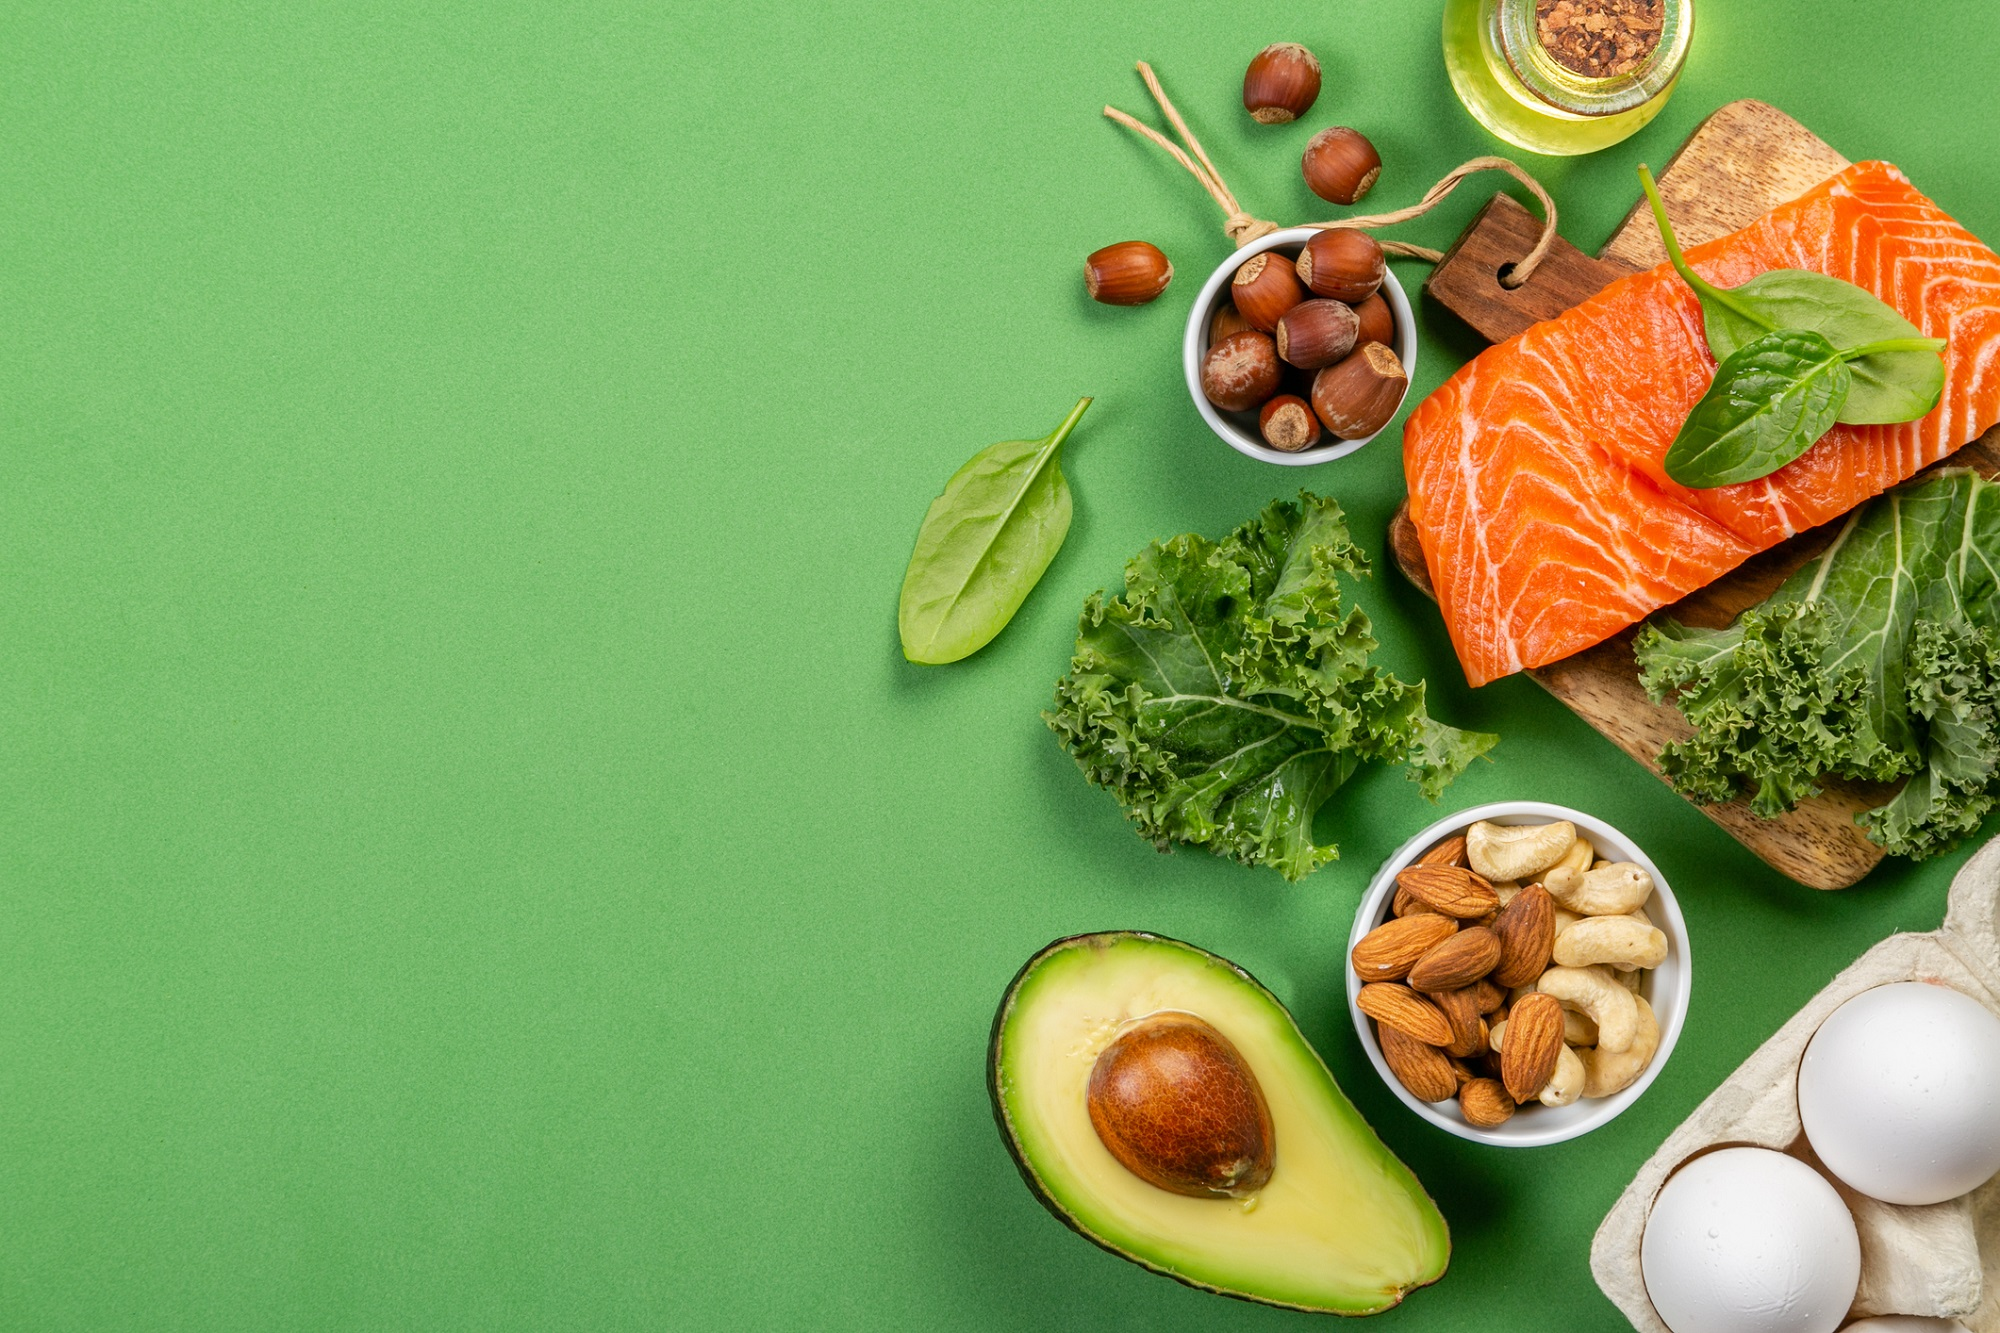 Aha Recommends A Focus On Healthy Dietary Choices Over Cholesterol Cutoffs Endocrinology Advisor